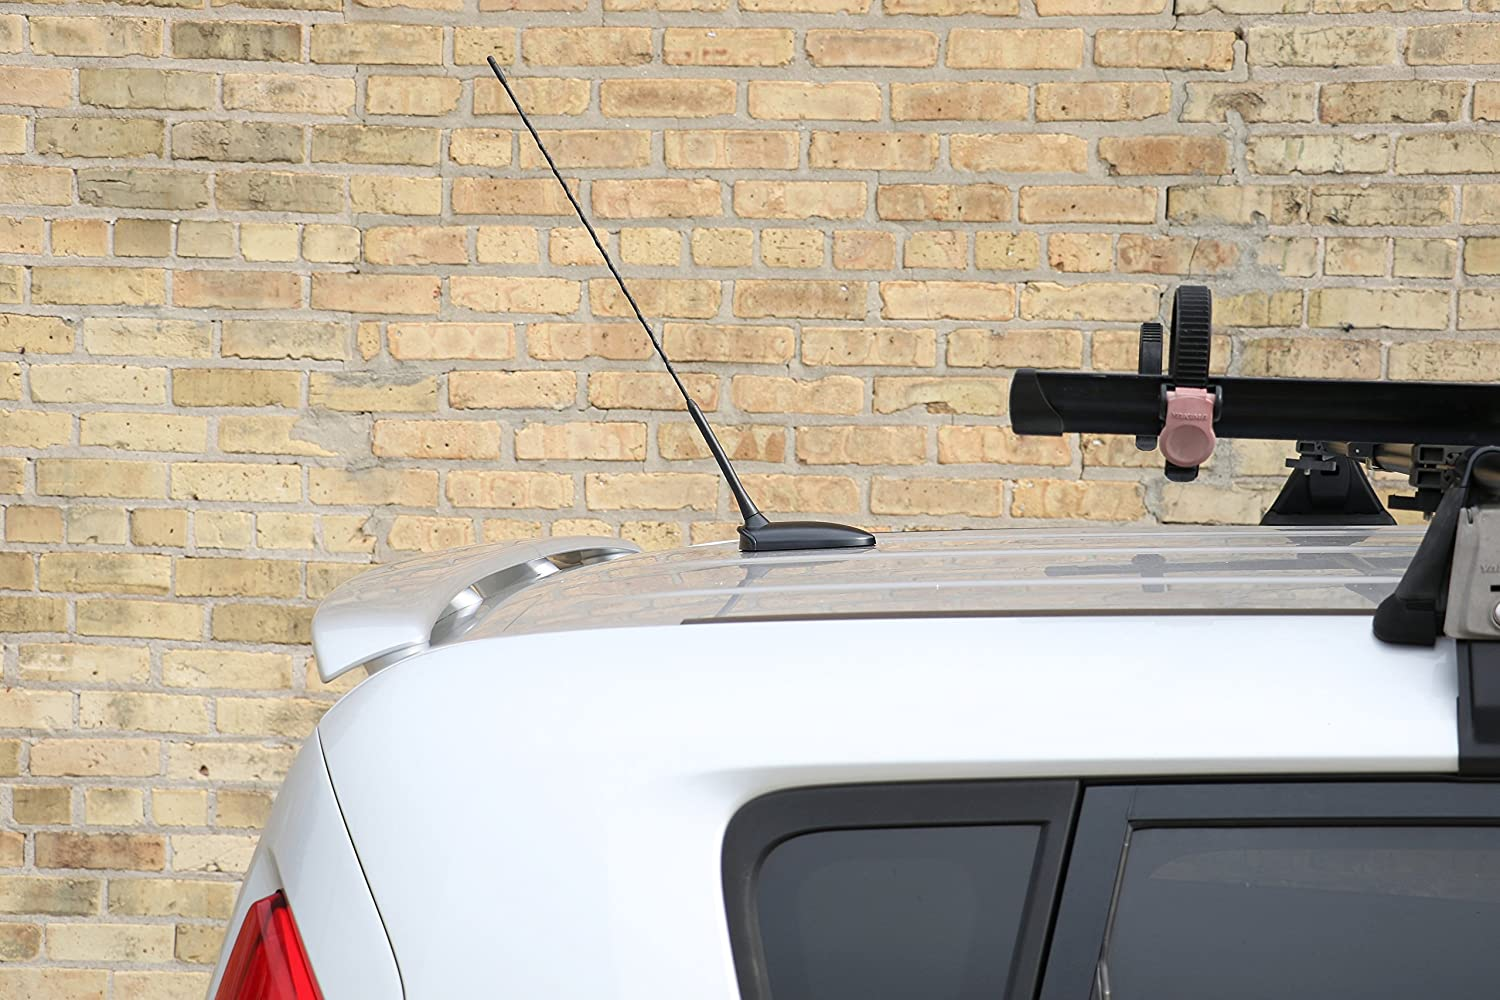 AntennaMastsRus 2007-2013 8 Screw-On Antenna is Compatible with Suzuki SX4